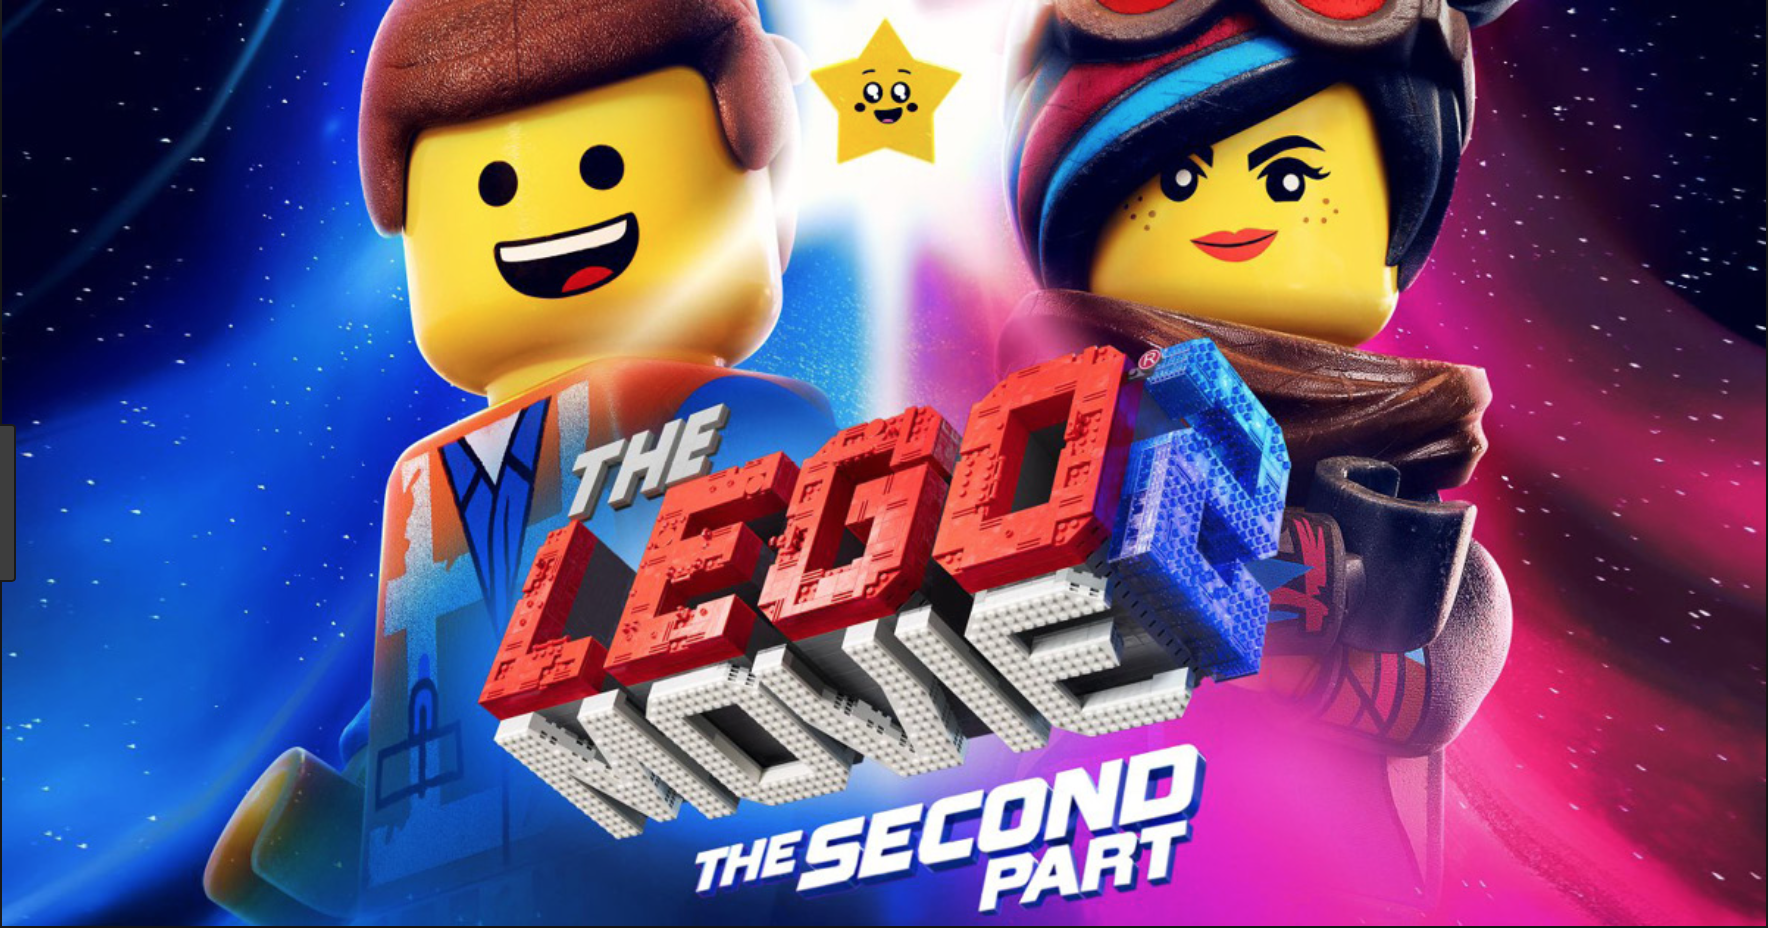 The Lego Movie.png